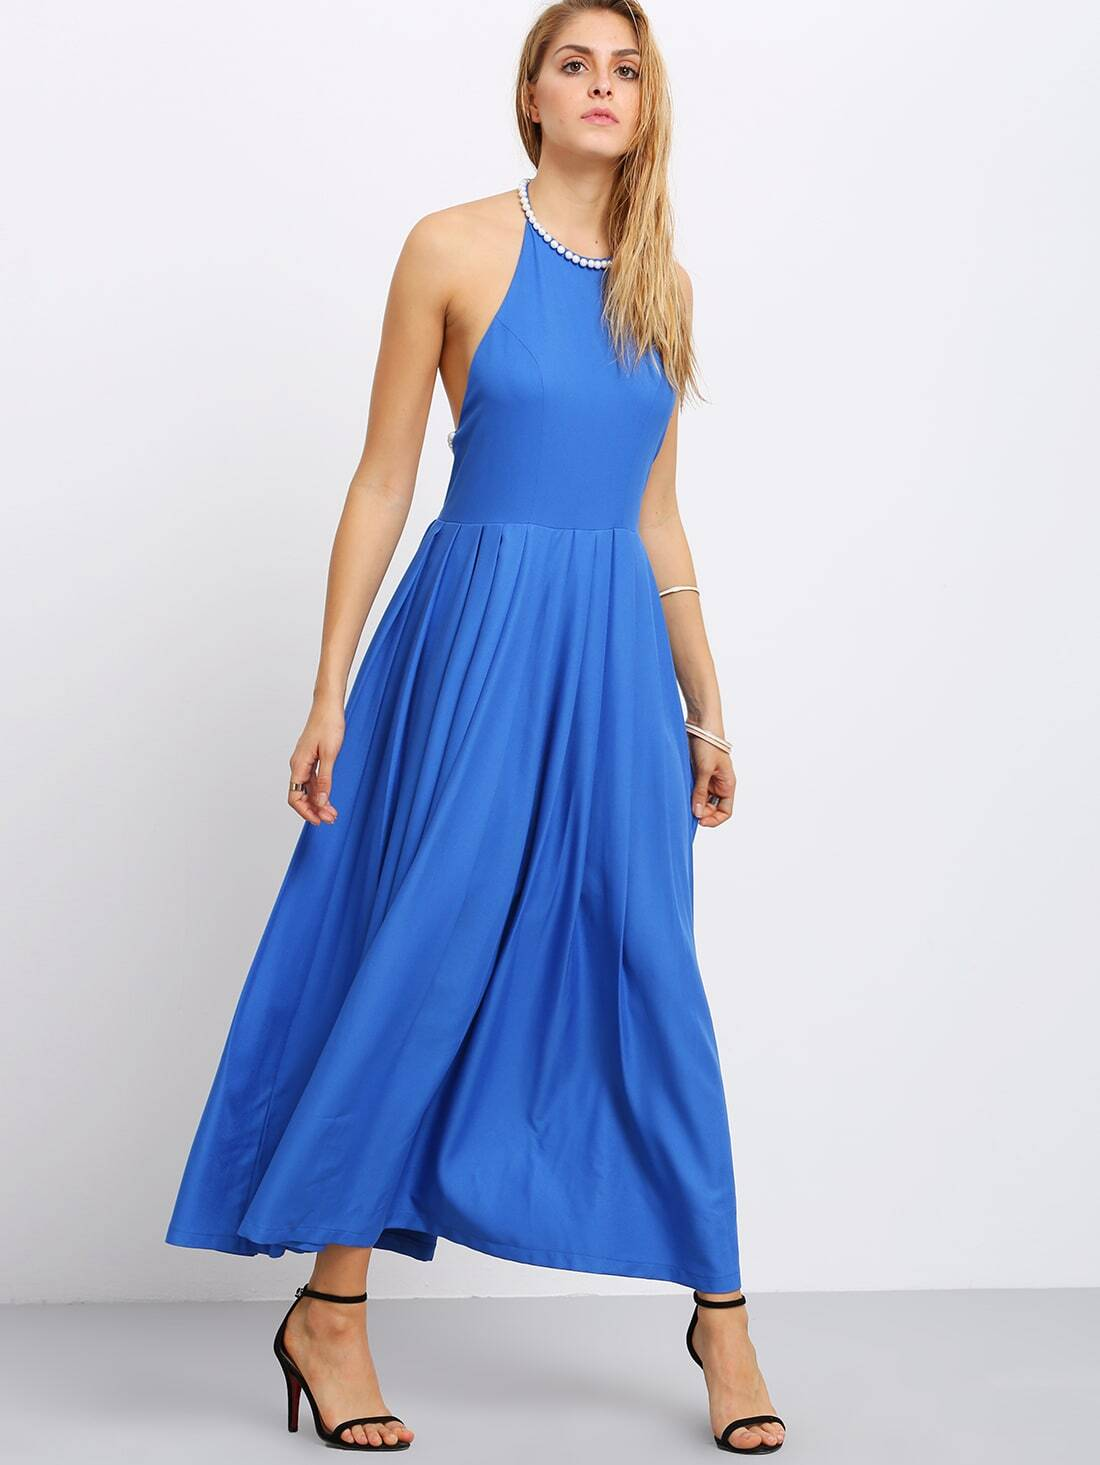 Blue Pearl-trimmed Neck Backless Pleated Dress -SheIn(Sheinside)